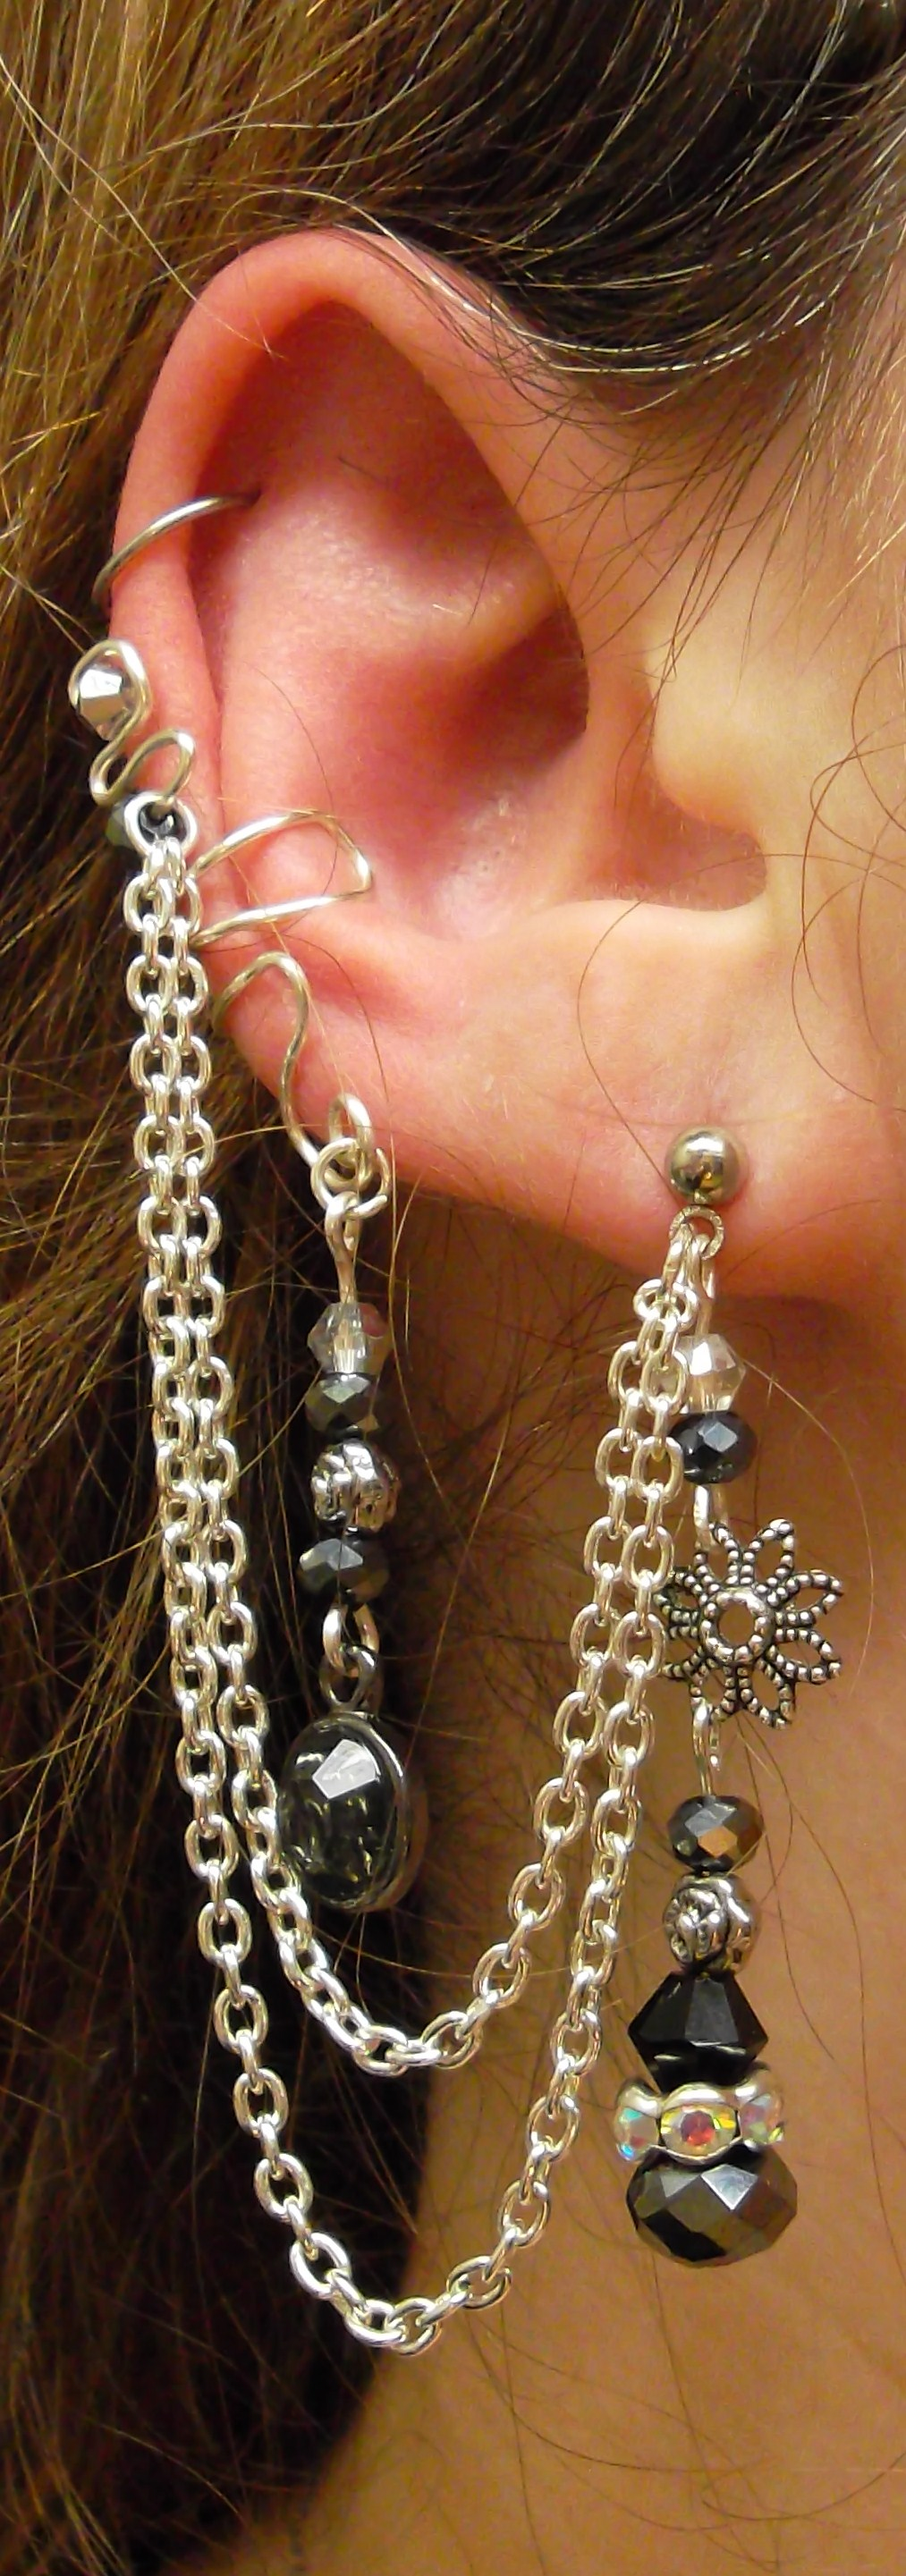 Sterling Silver Elven Earcuff Chained Earring 20 by SerenityinChains